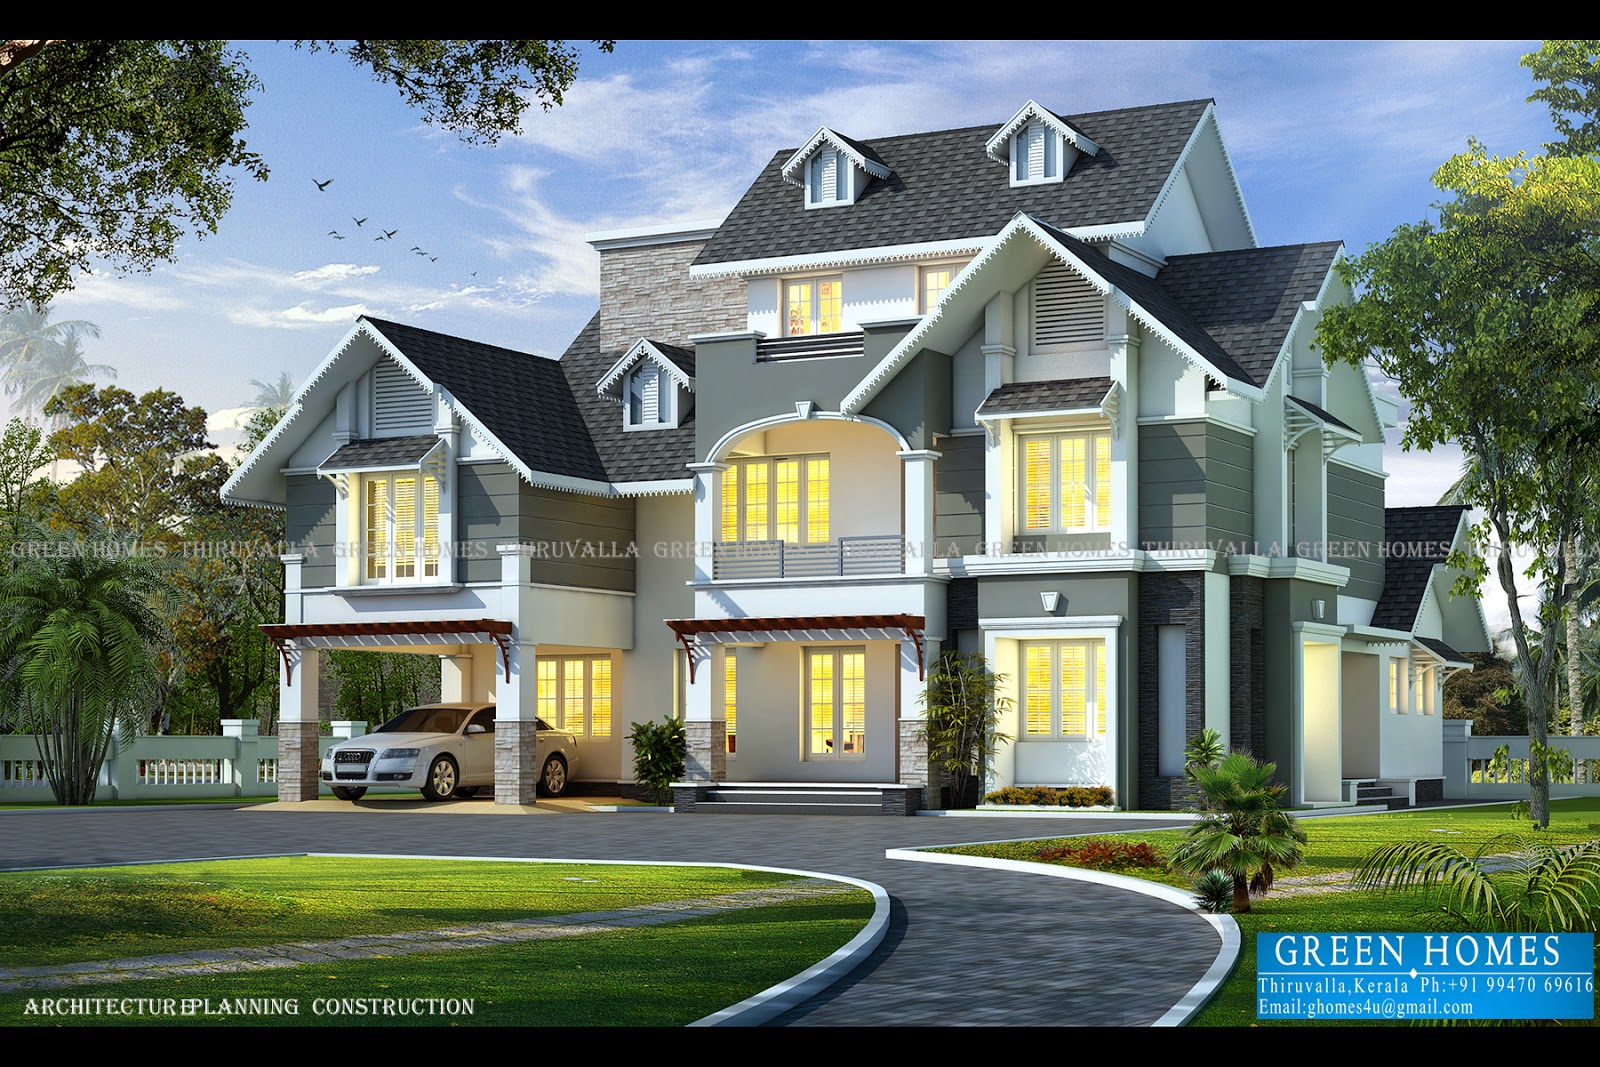 Green homes awesome european style house in 3650 sq feet for Green home designs